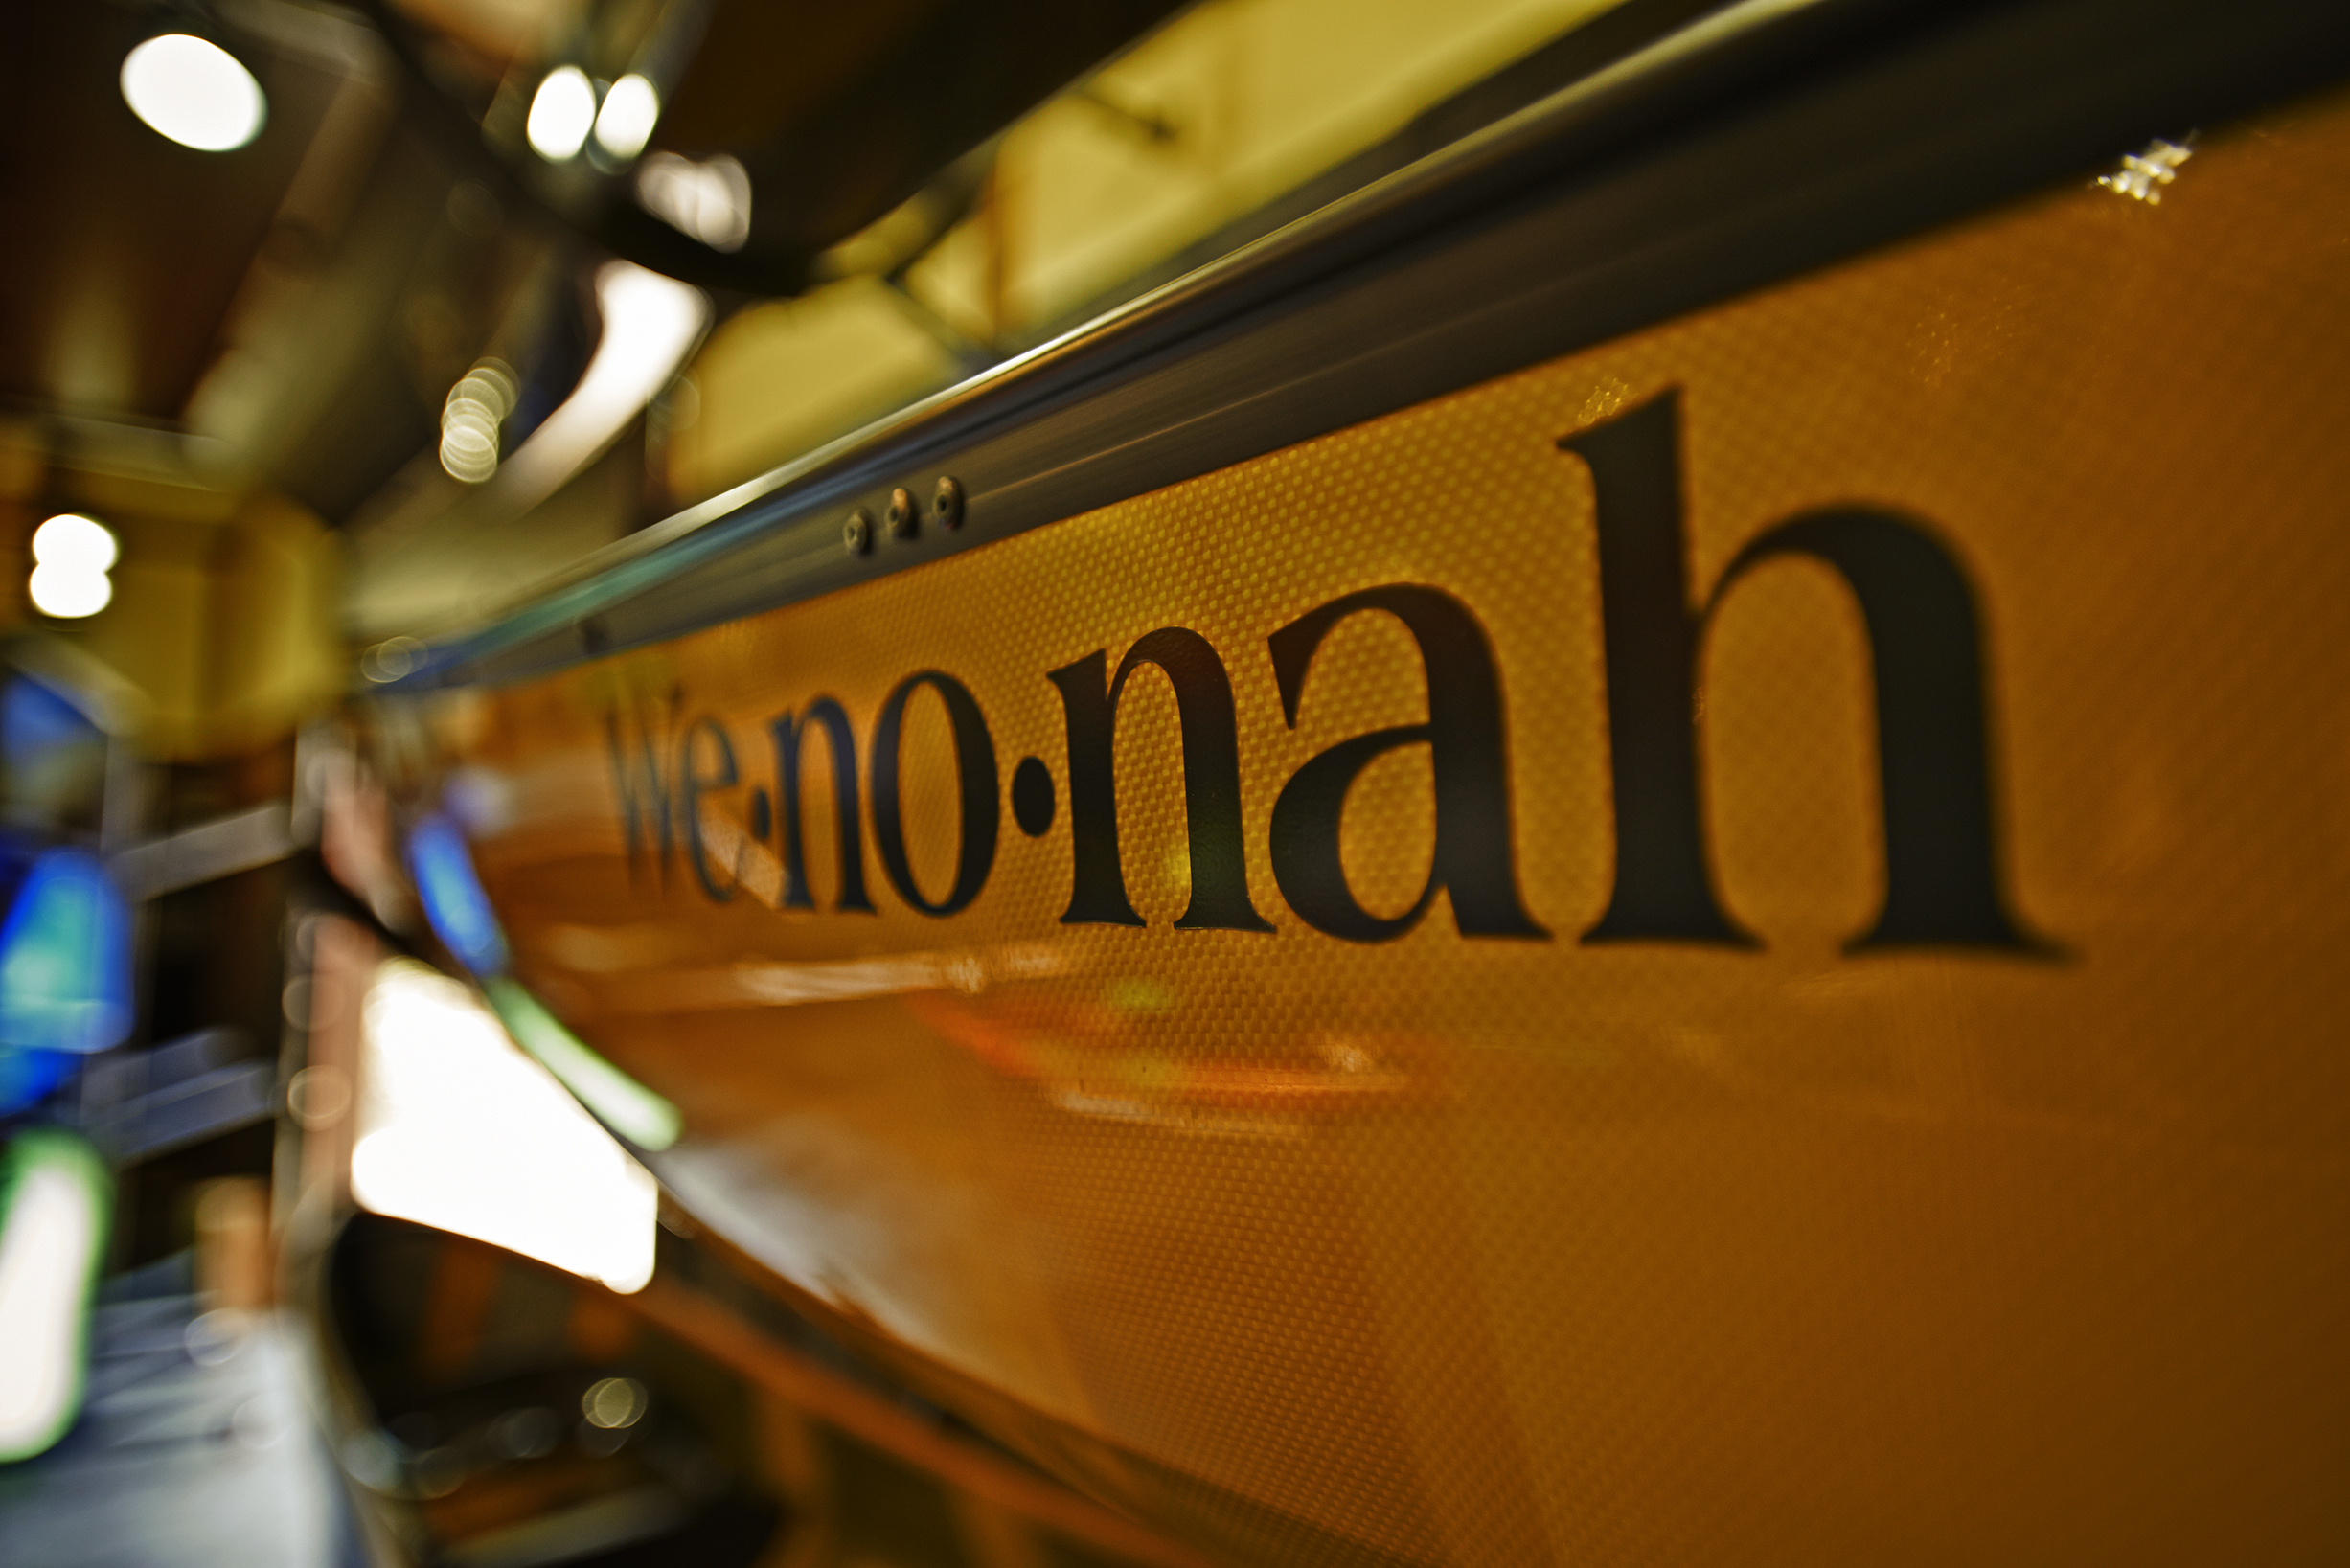 Northbound Outfitters - Wenonah Canoes & Canoe Accessories in